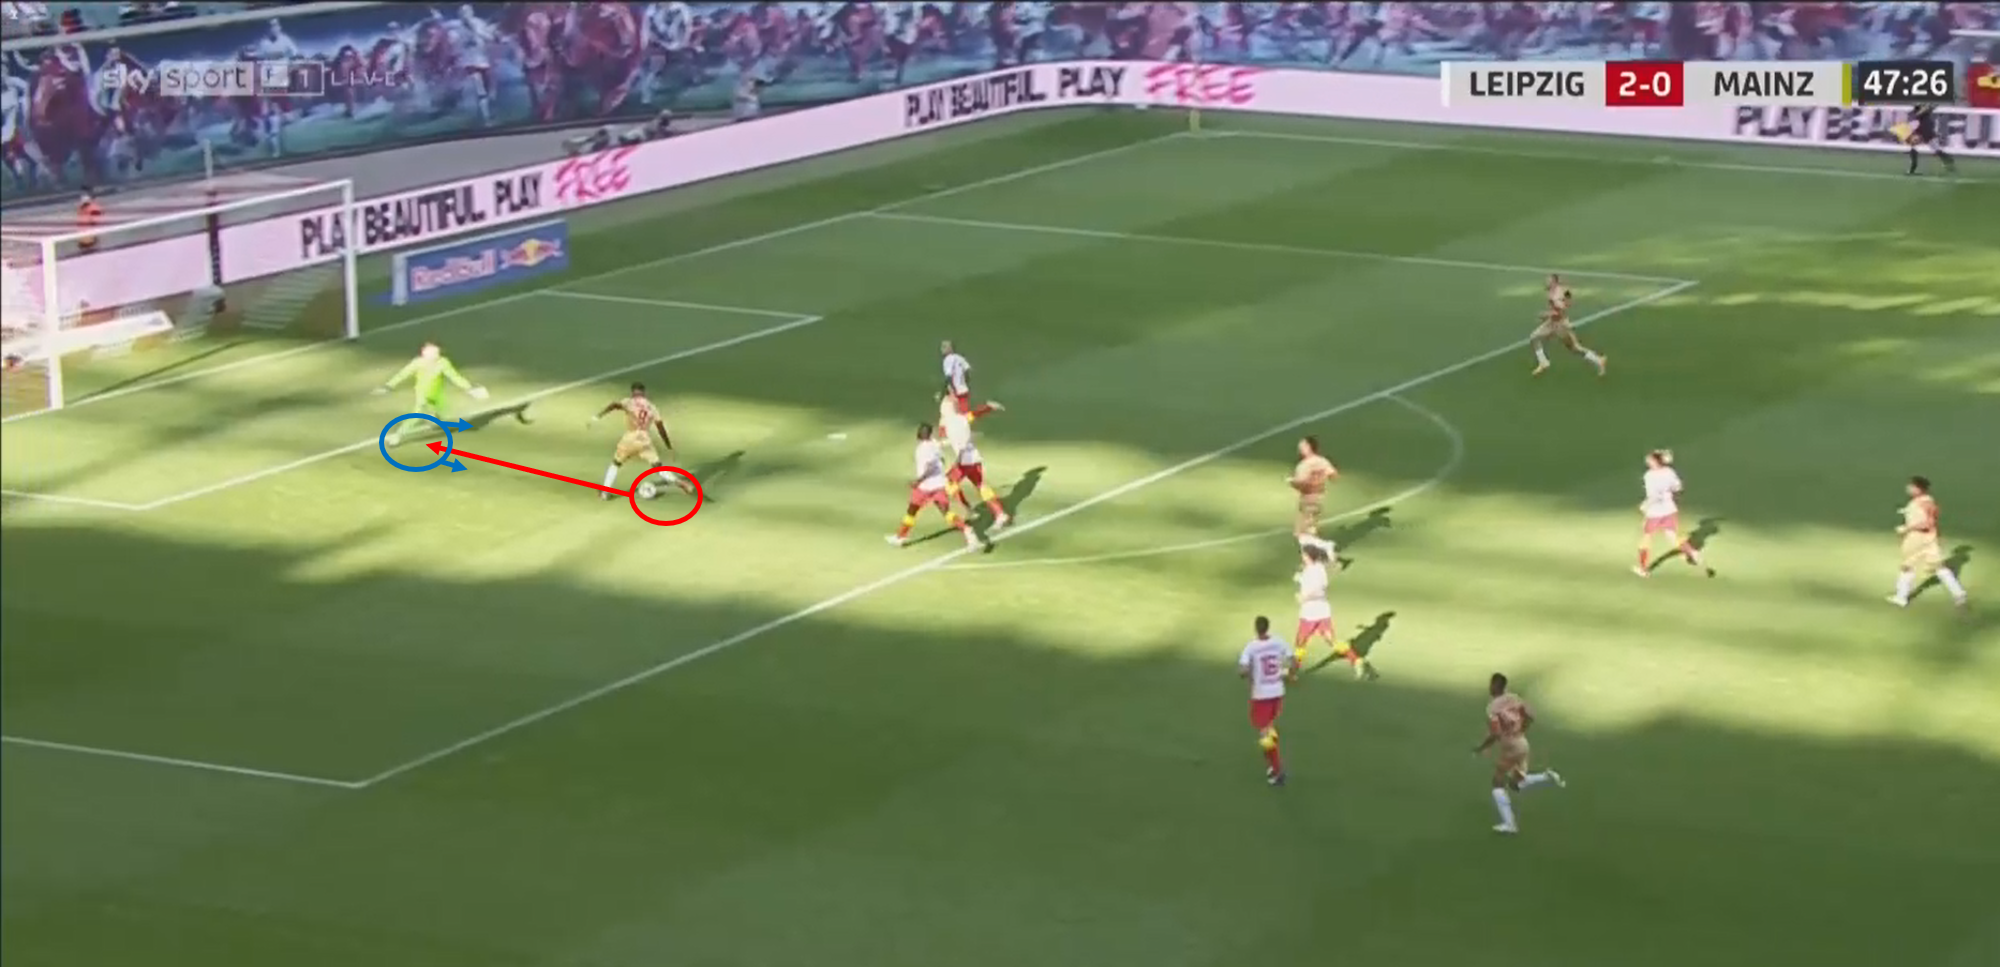 Bundesliga 2020/21: RB Leipzig vs Mainz 05 – tactical analysis - tactics